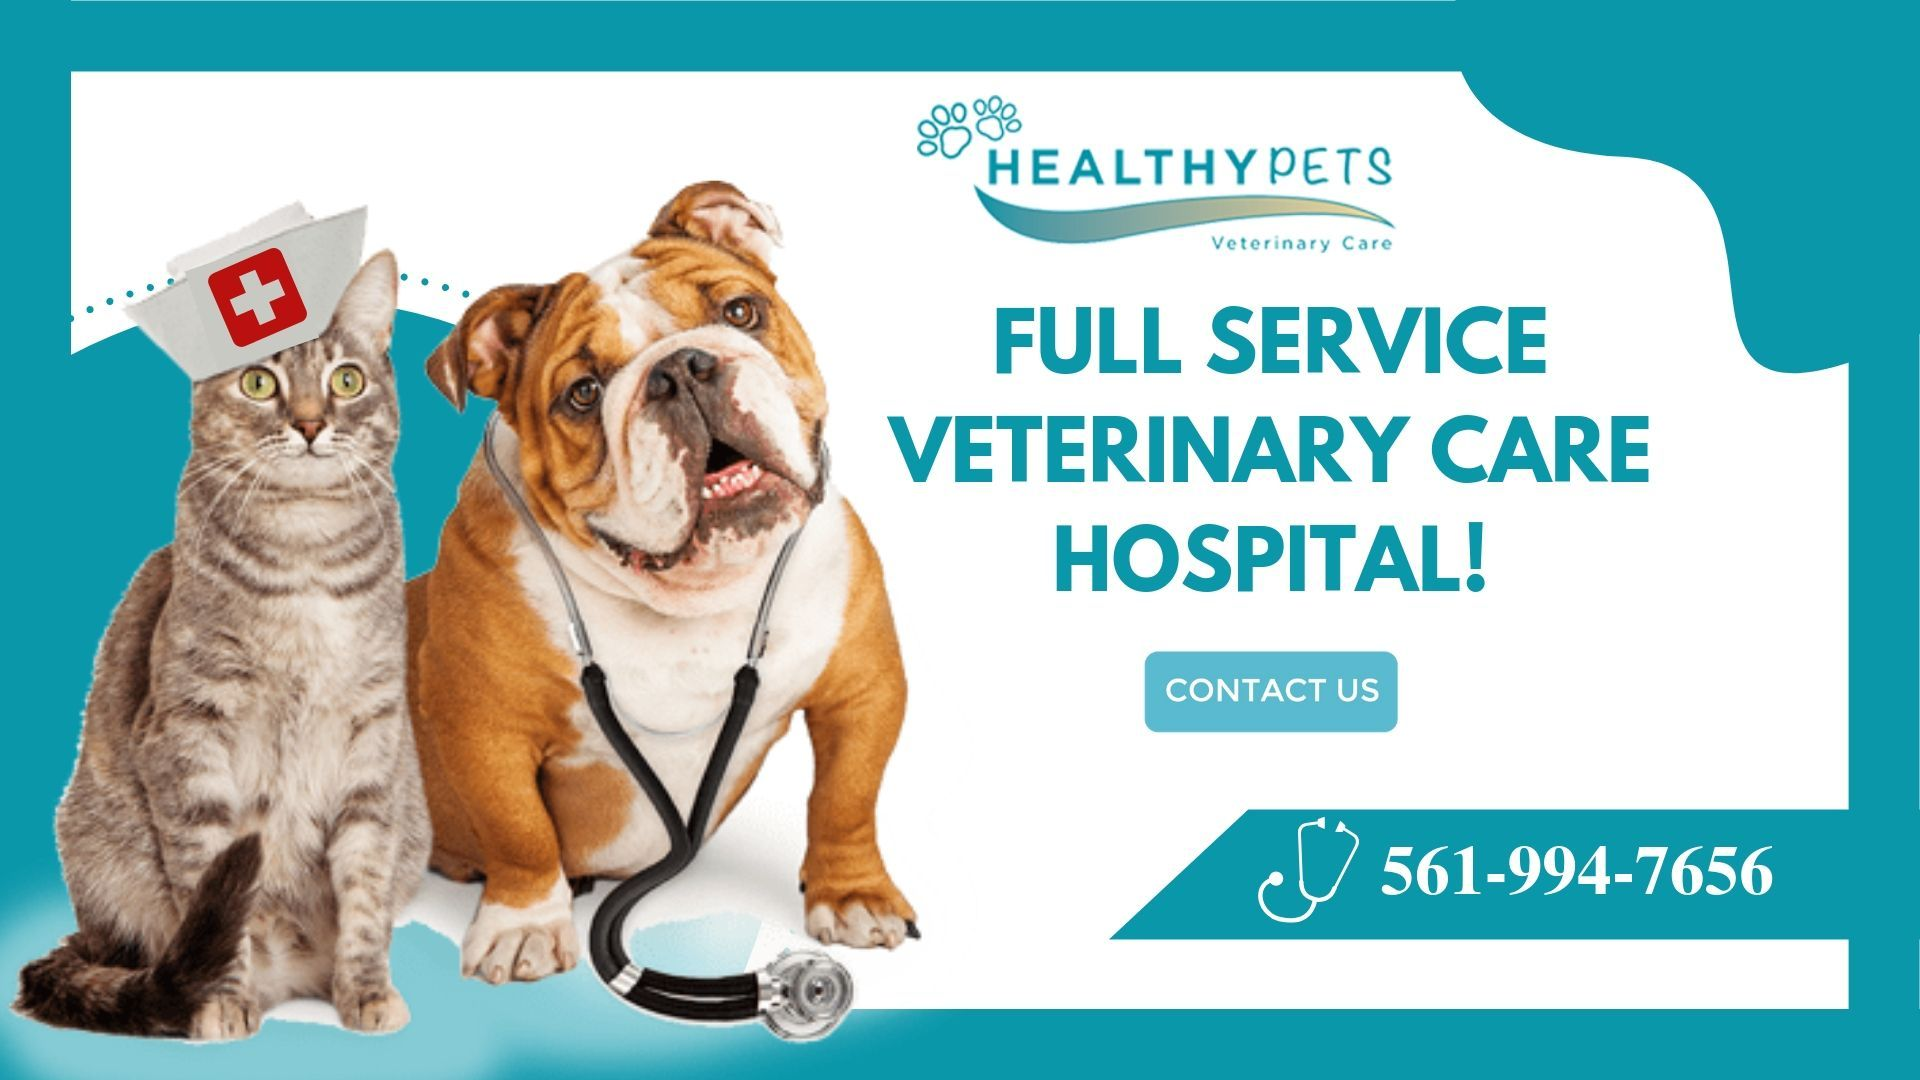 Boca Animal Hospital With Images Veterinary Care Healthy Pets Animal Hospital